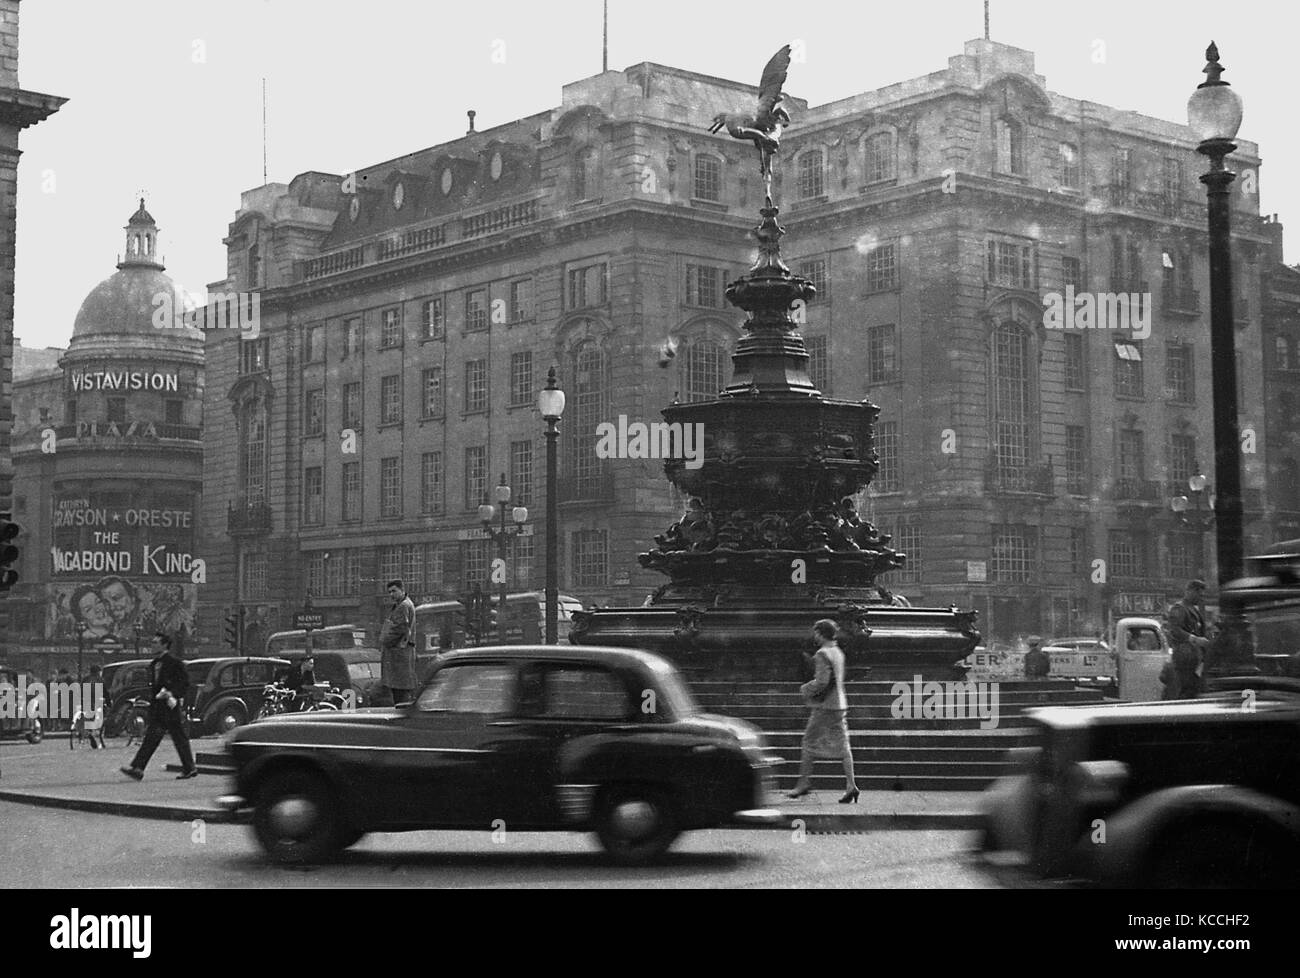 1956, historical picture showing cars and people at the Eros statue at Piccadilly Circus, London, England, UK with - Stock Image